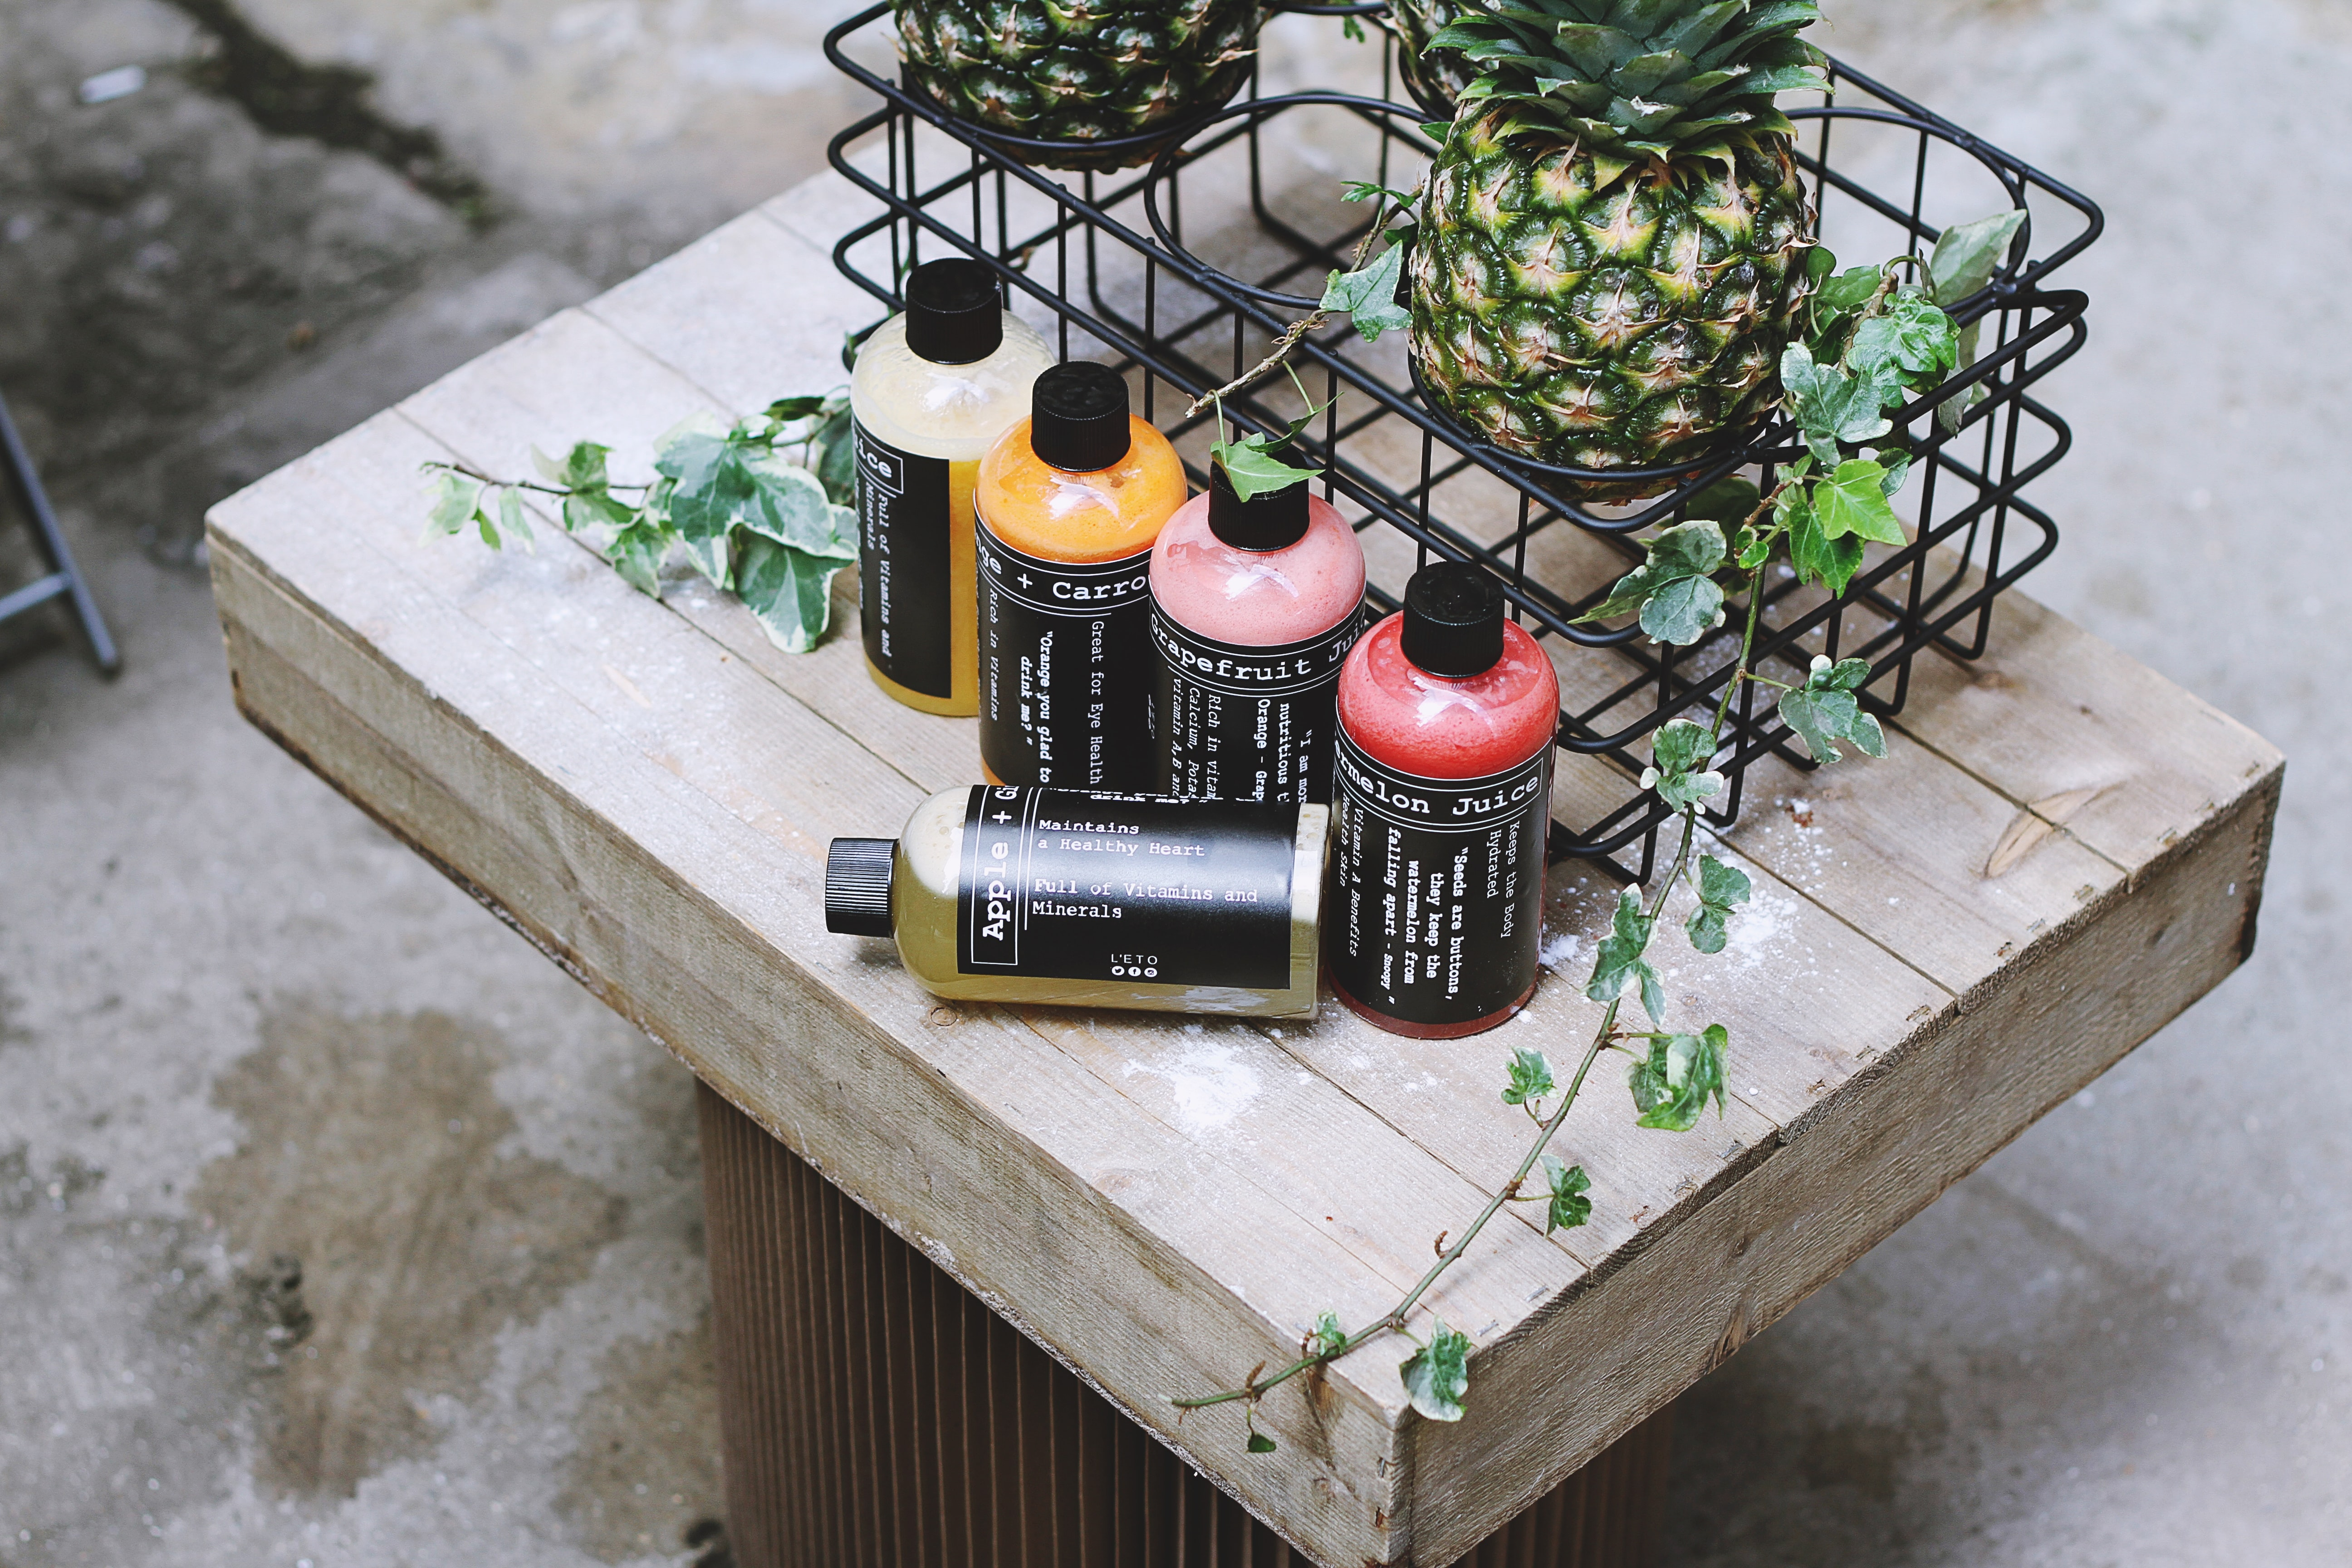 5 Shampoo Bottles on Wooden Table next to 2 Pineapples in a Black Cart